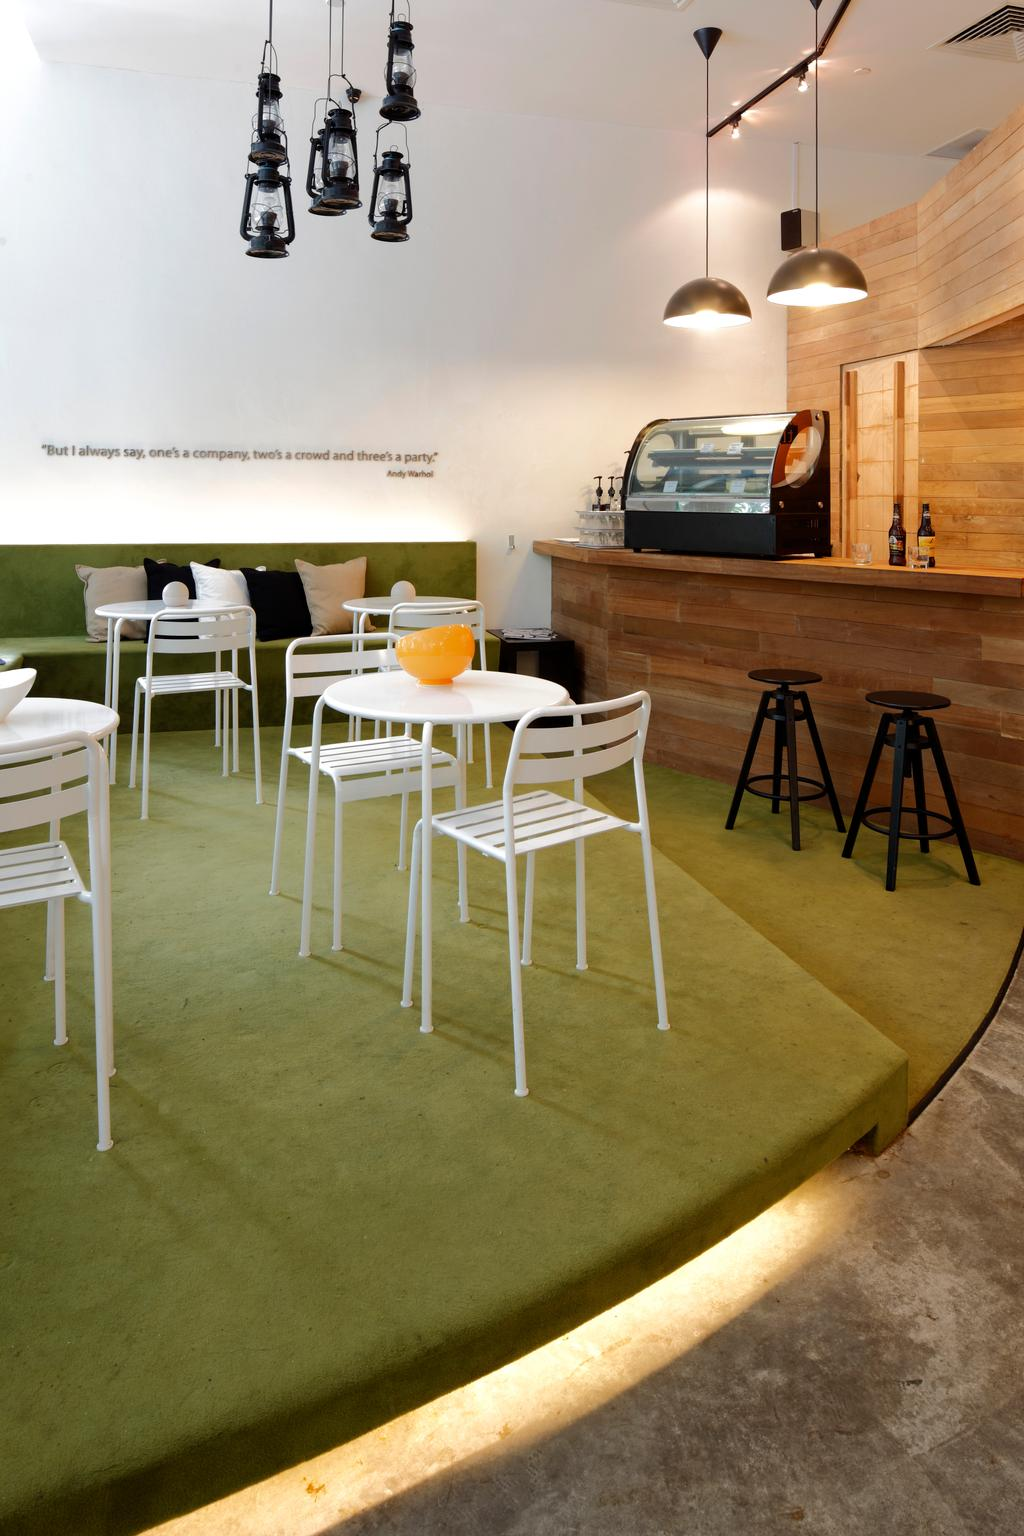 The Lawn, Commercial, Architect, EHKA Studio, Minimalistic, Dining Table, Furniture, Table, Chair, Bar Stool, Electronics, Entertainment Center